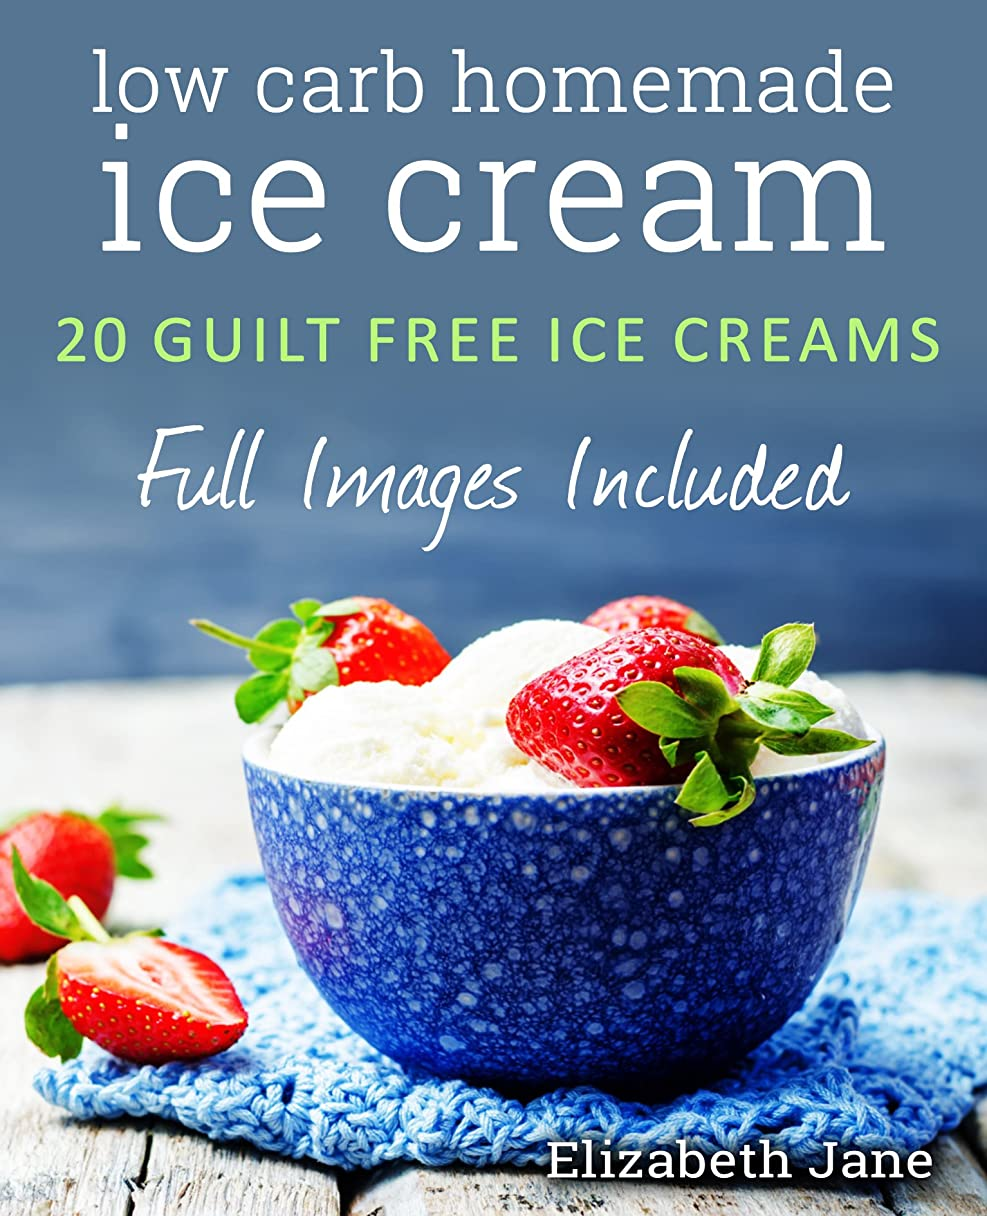 Keto Homemade Ice Cream: 20 Diabetic, Low Carb, Paleo, Gluten Free, Guilt-Free Recipes (Elizabeth Jane Cookbook) (English Edition)